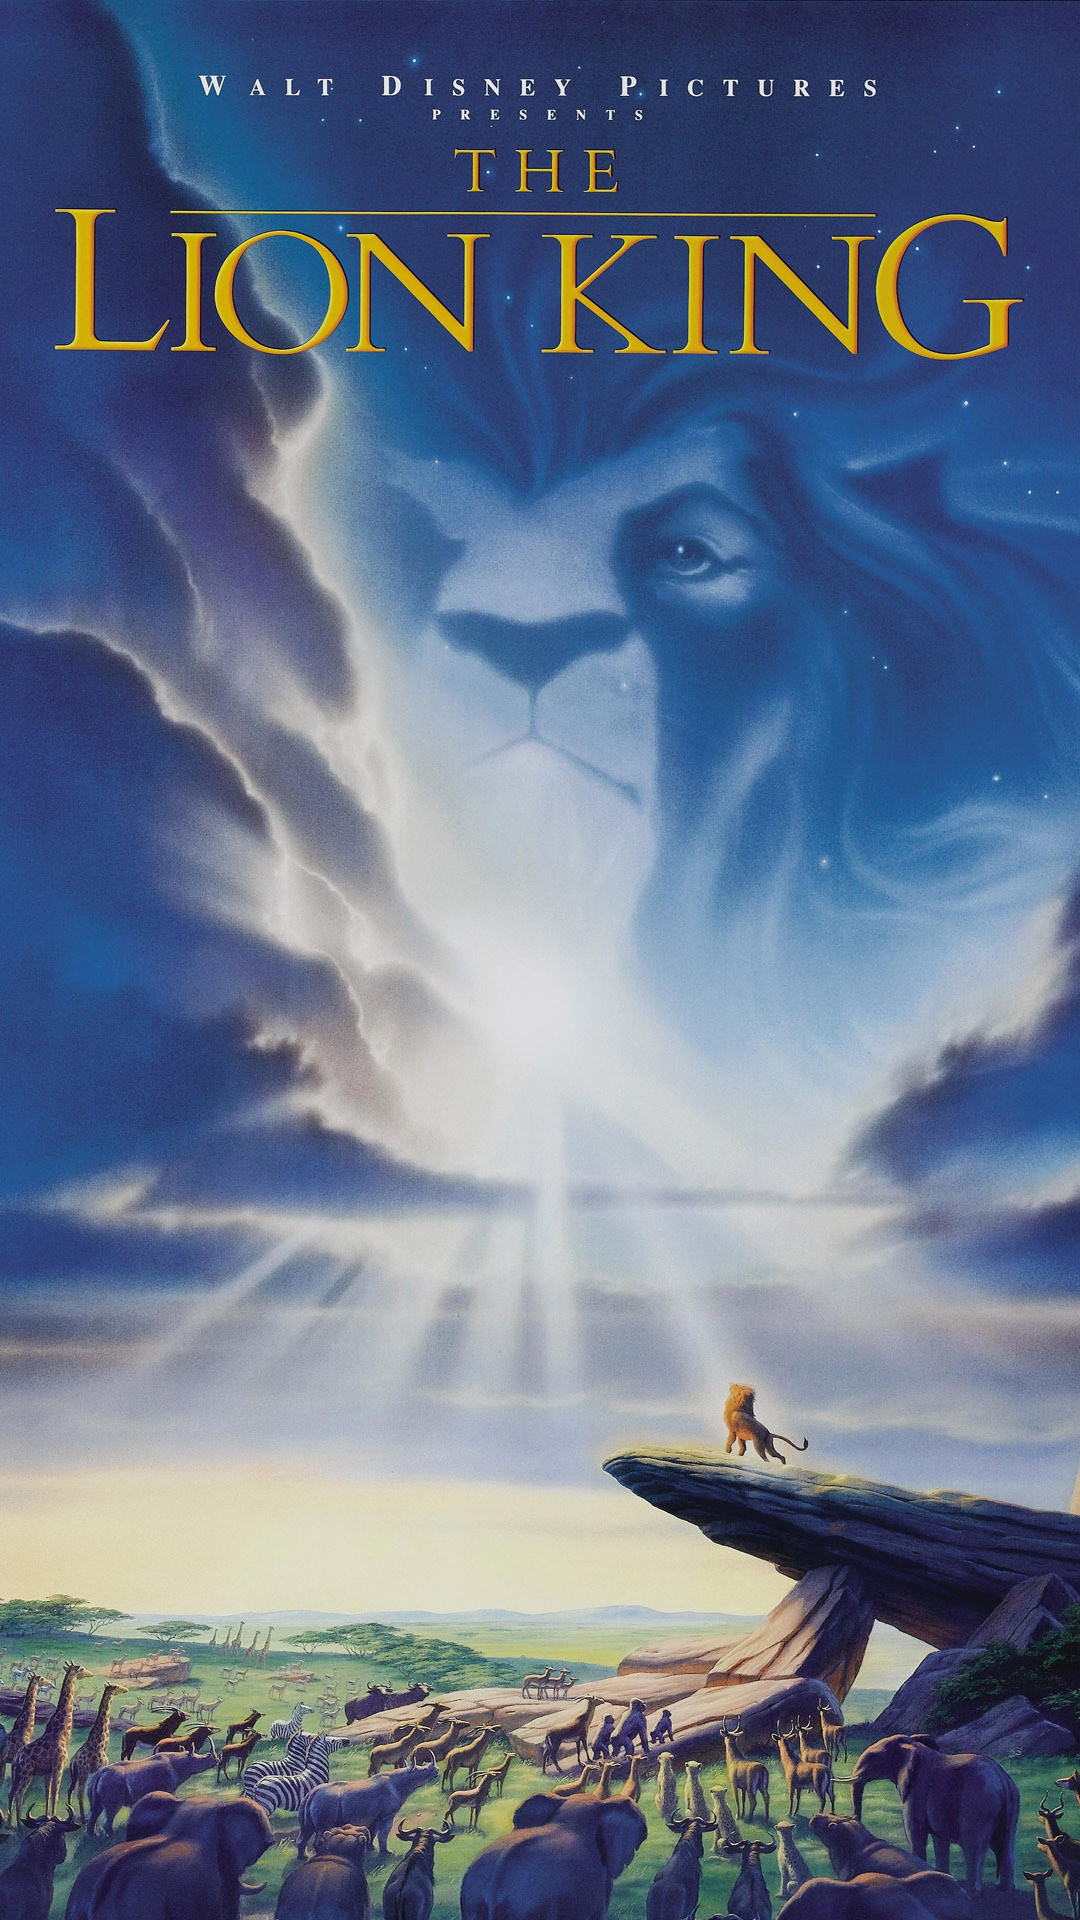 … the lion king mobile wallpaper 12478; iphone …